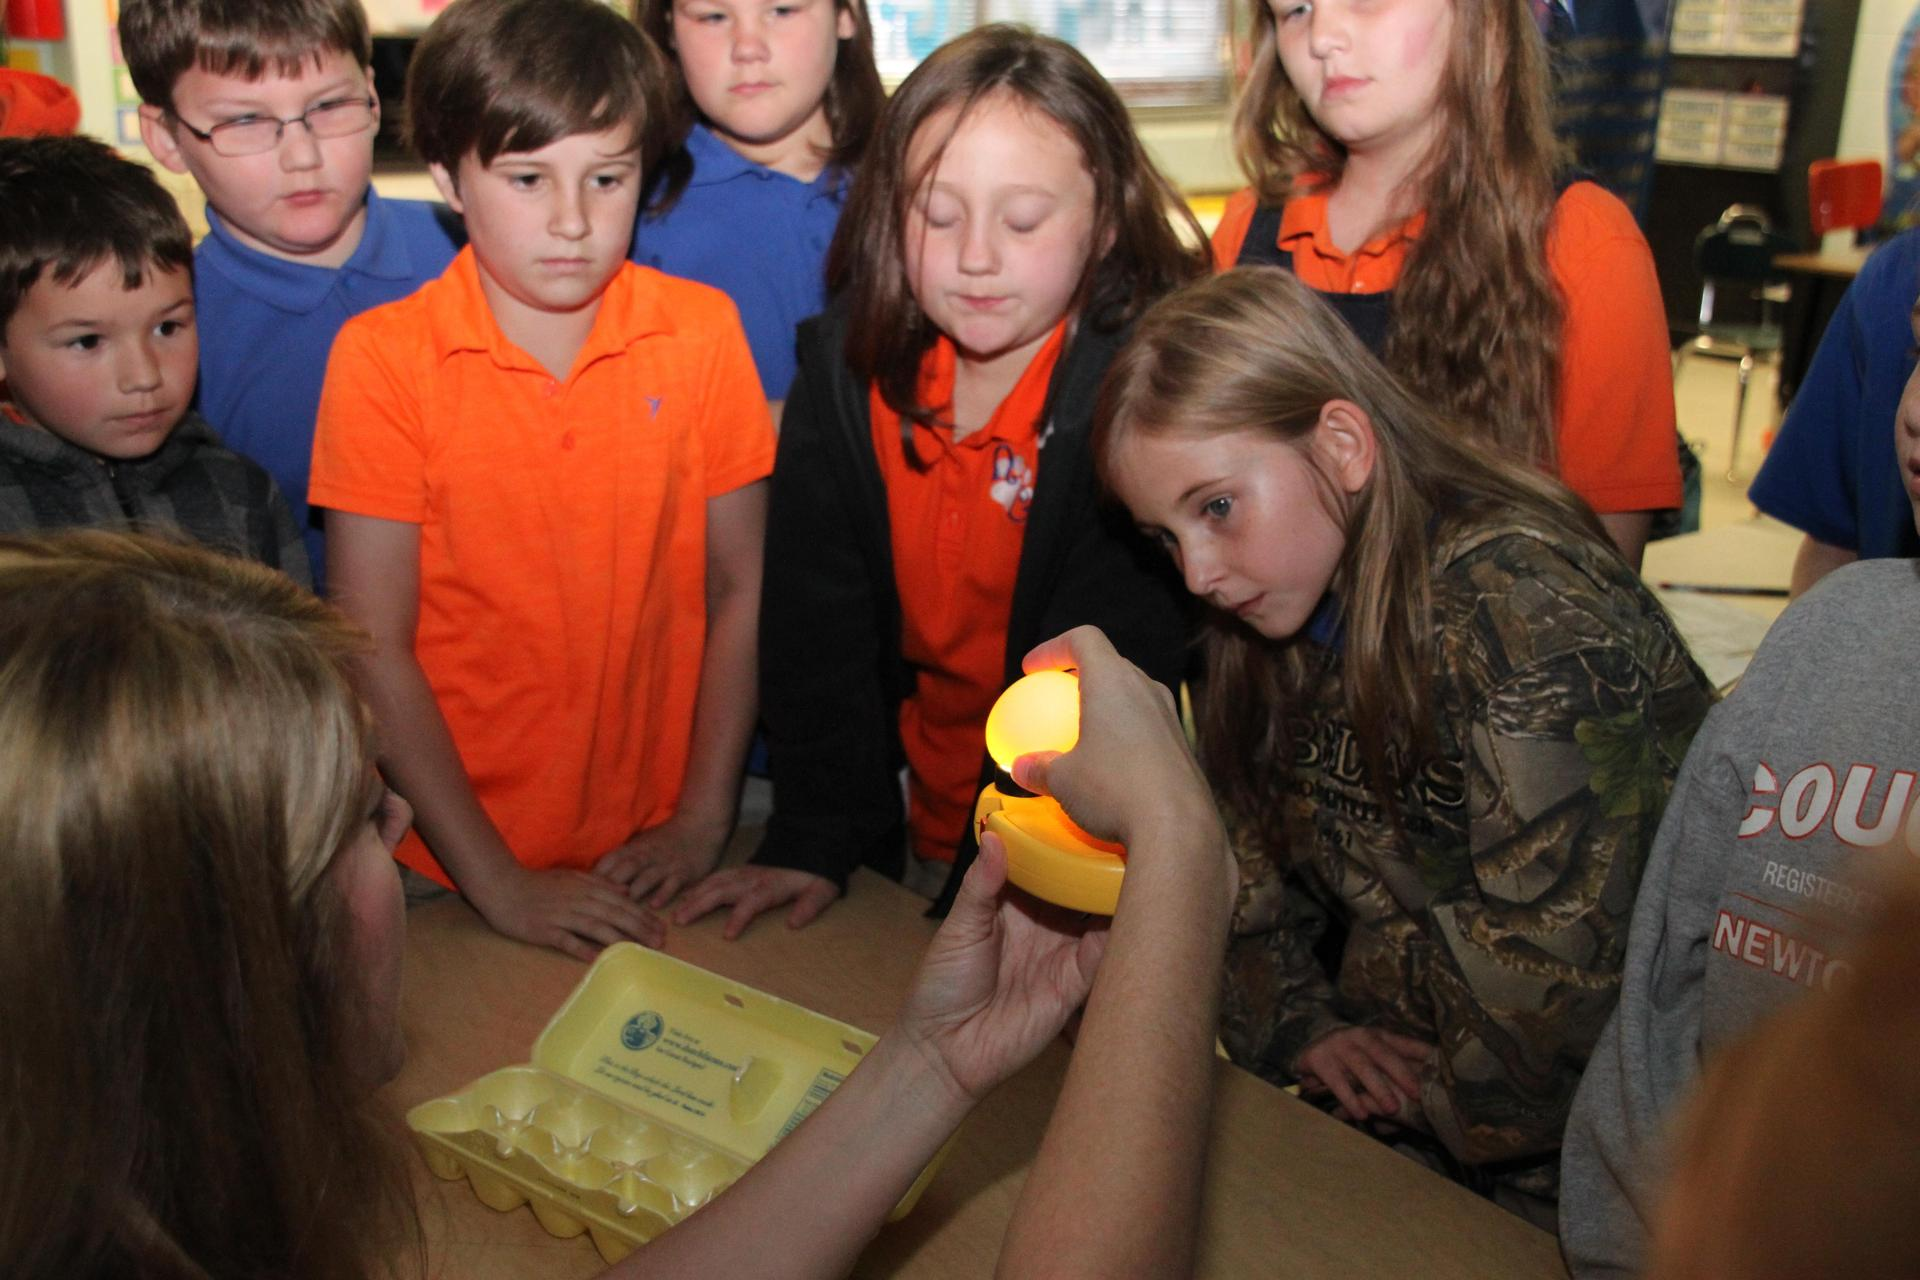 Demonstration of an egg hatching with Students